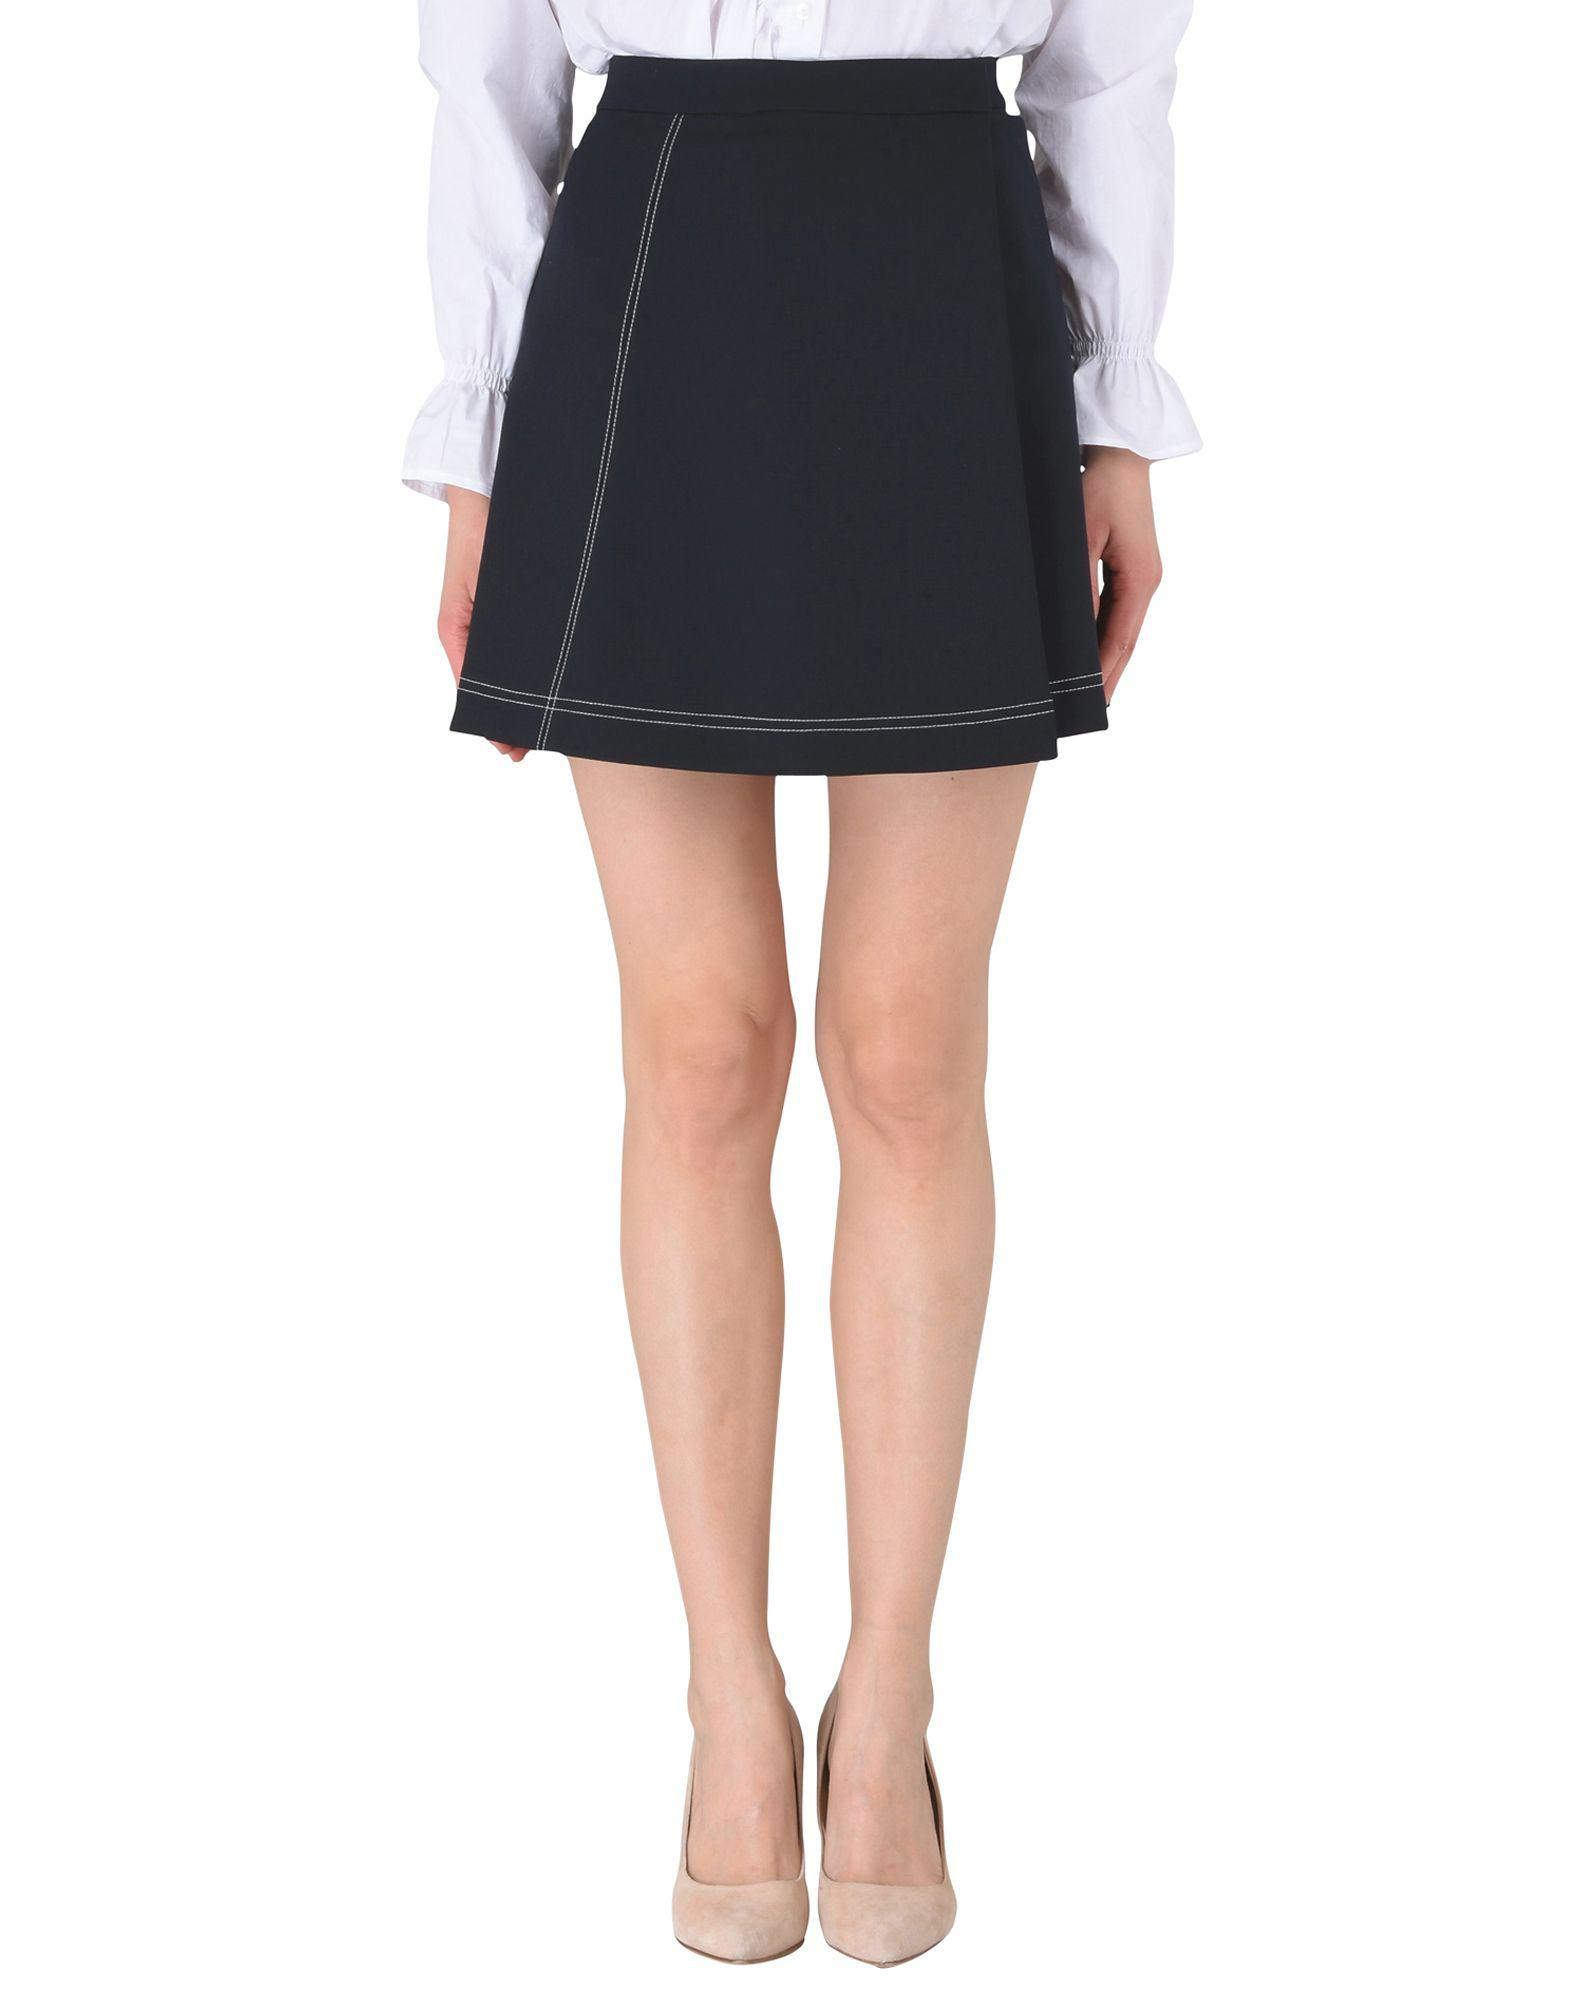 Outlet Online SKIRTS - Knee length skirts Thamanyah Huge Surprise Cheap Price Sale Fashionable eKMcRd3g